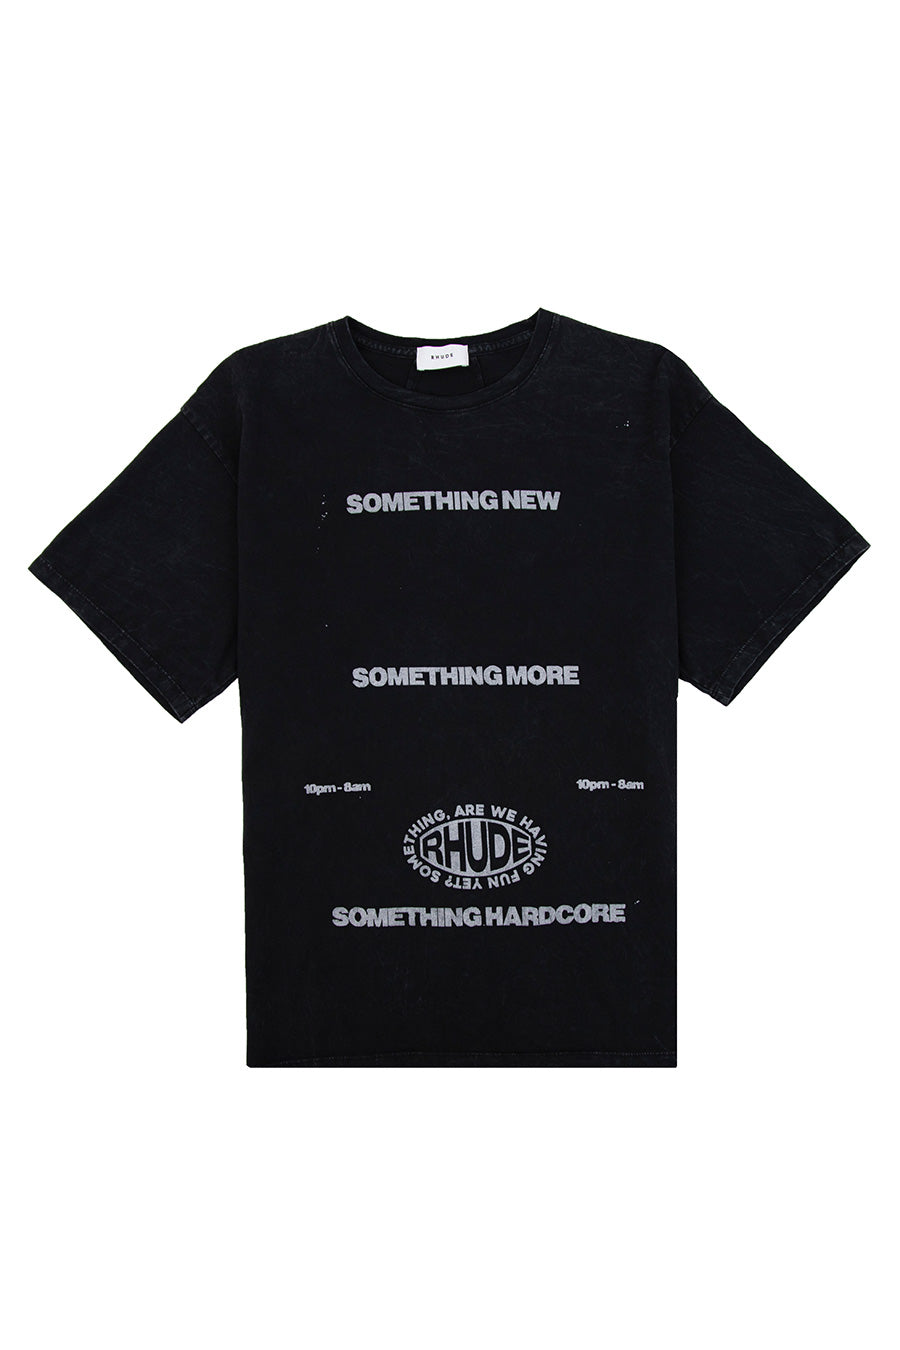 Rhude - Black Something More T-Shirt | 1032 SPACE